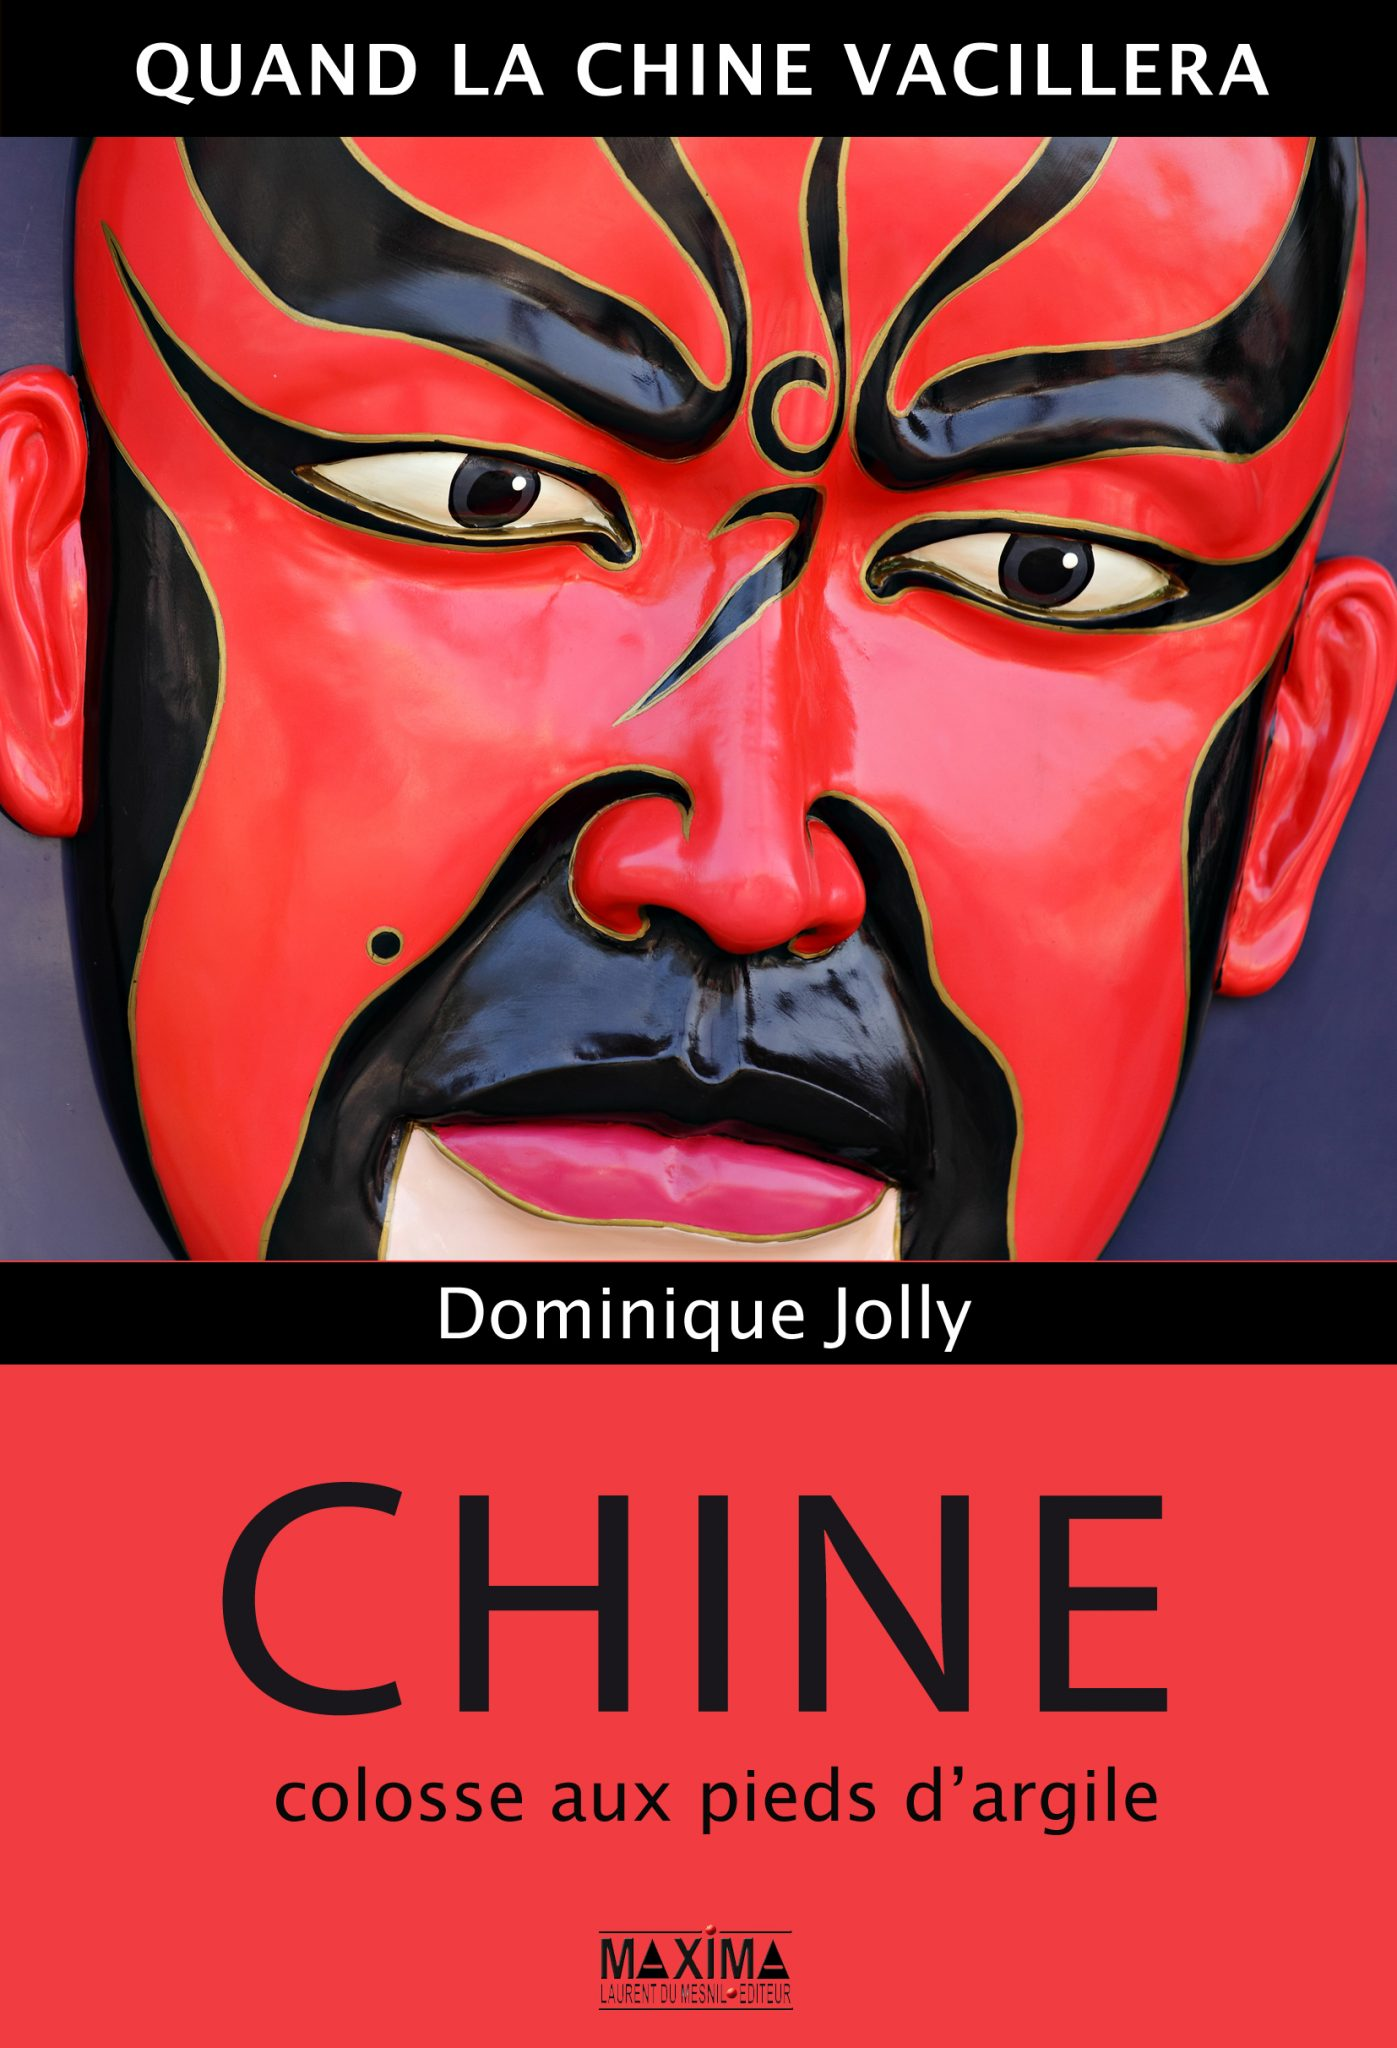 Jolly-Chine